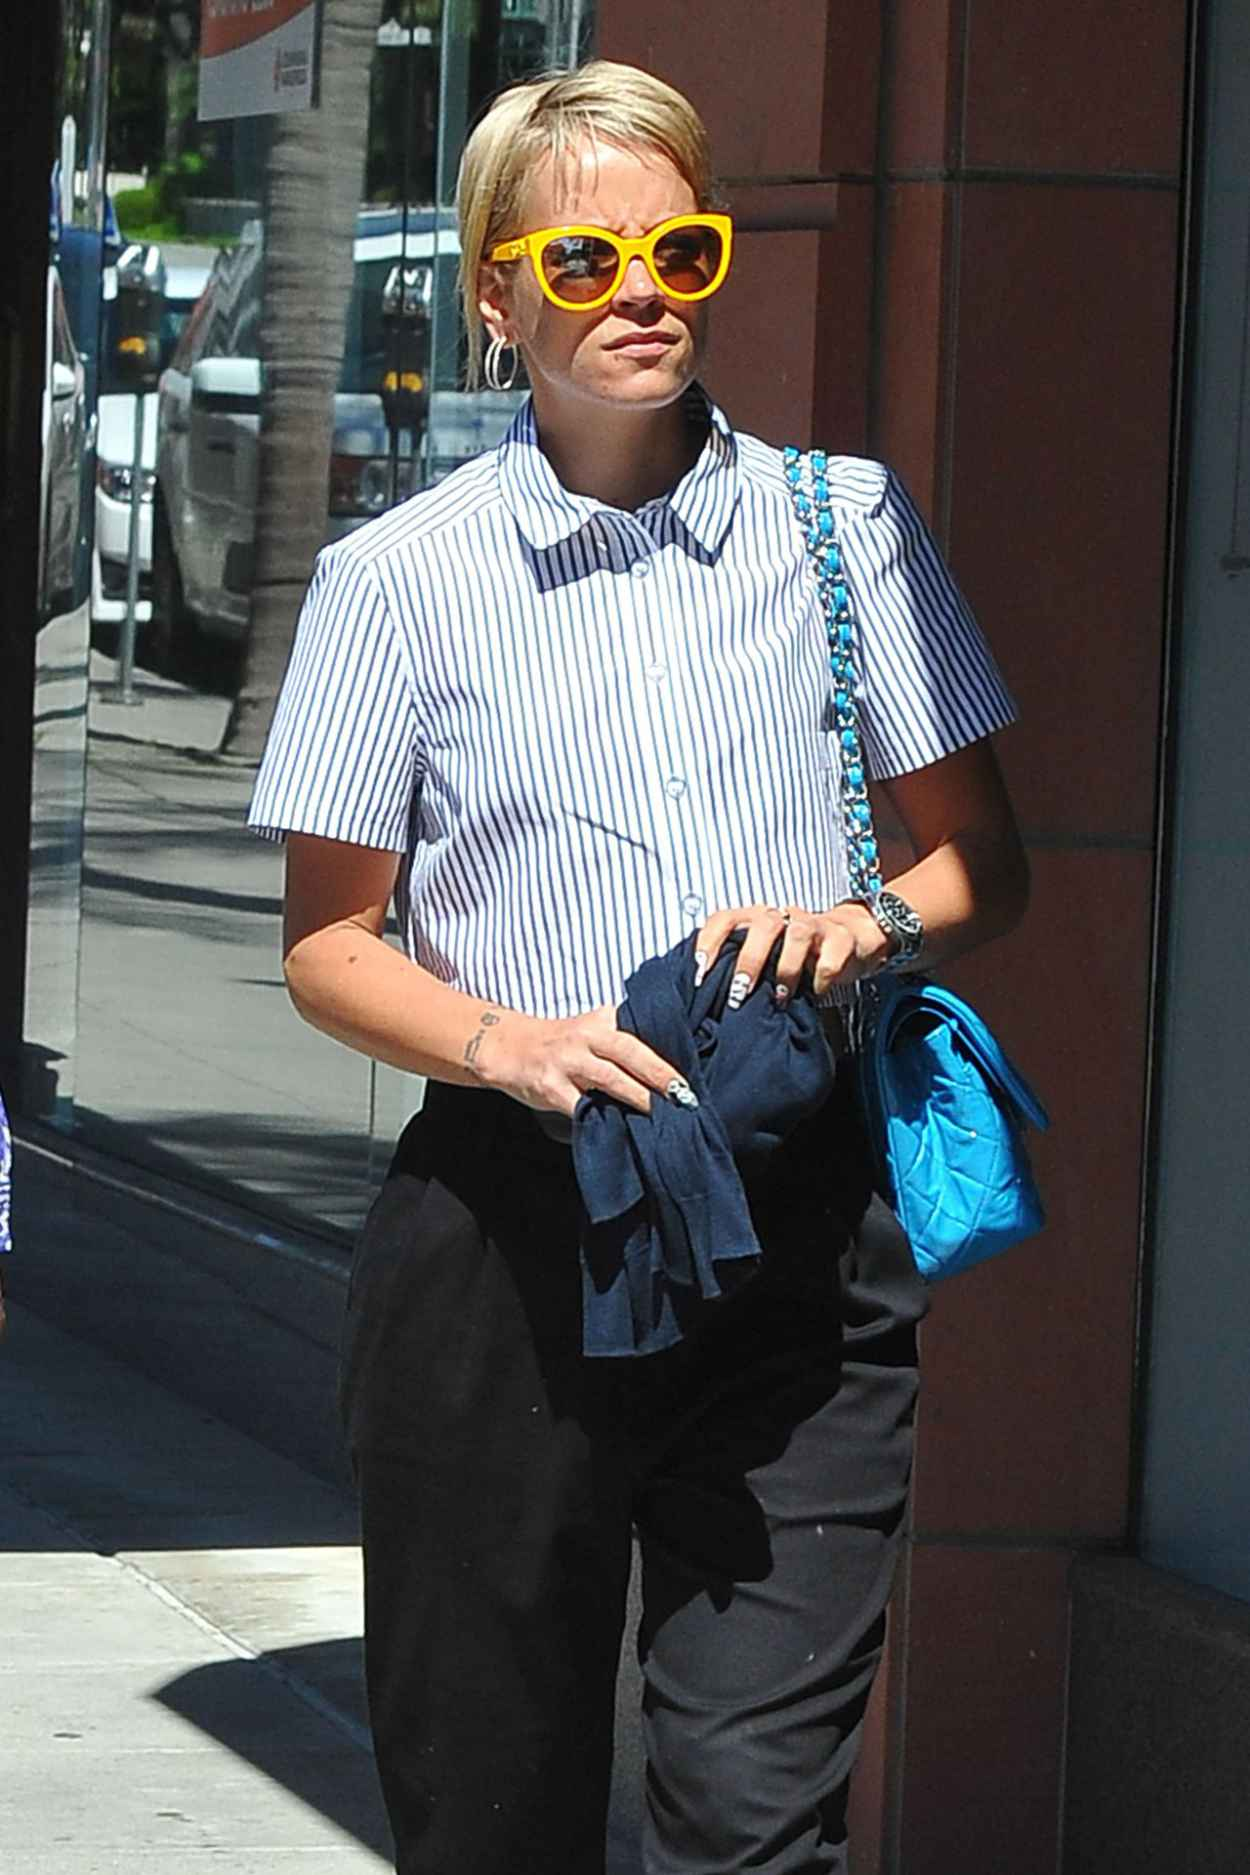 Lily Allen Street Fashion - Going to Anastasian Salon in Beverly Hills - March 2015-1